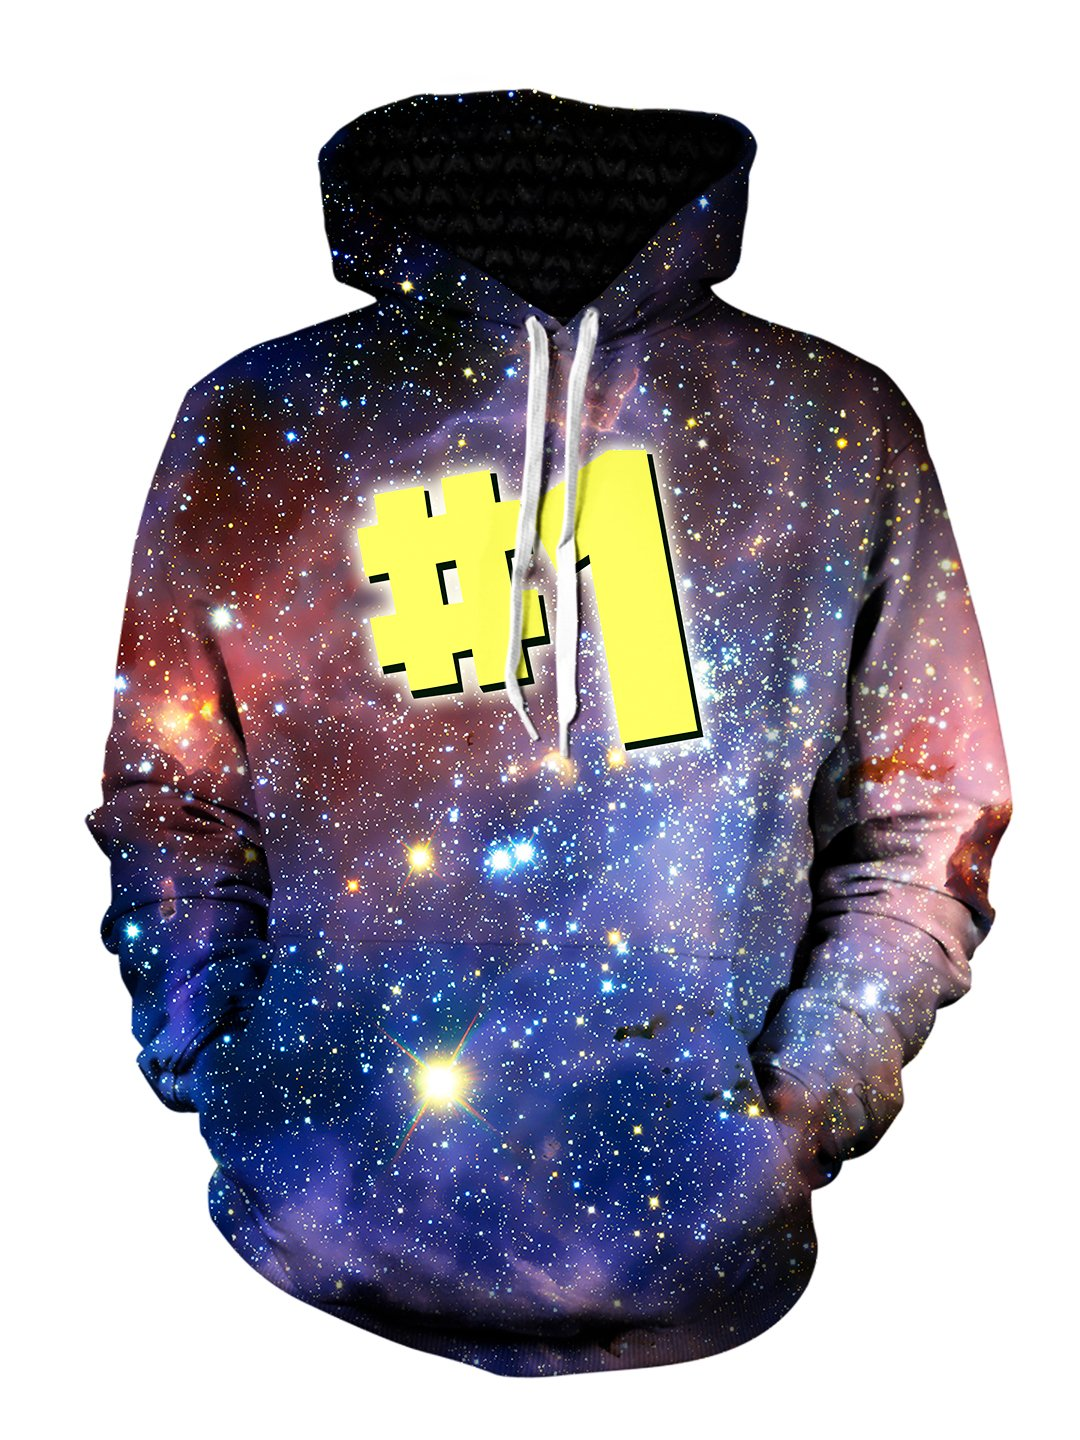 Men's pink & blue galaxy #1 pullover hoodie front view.